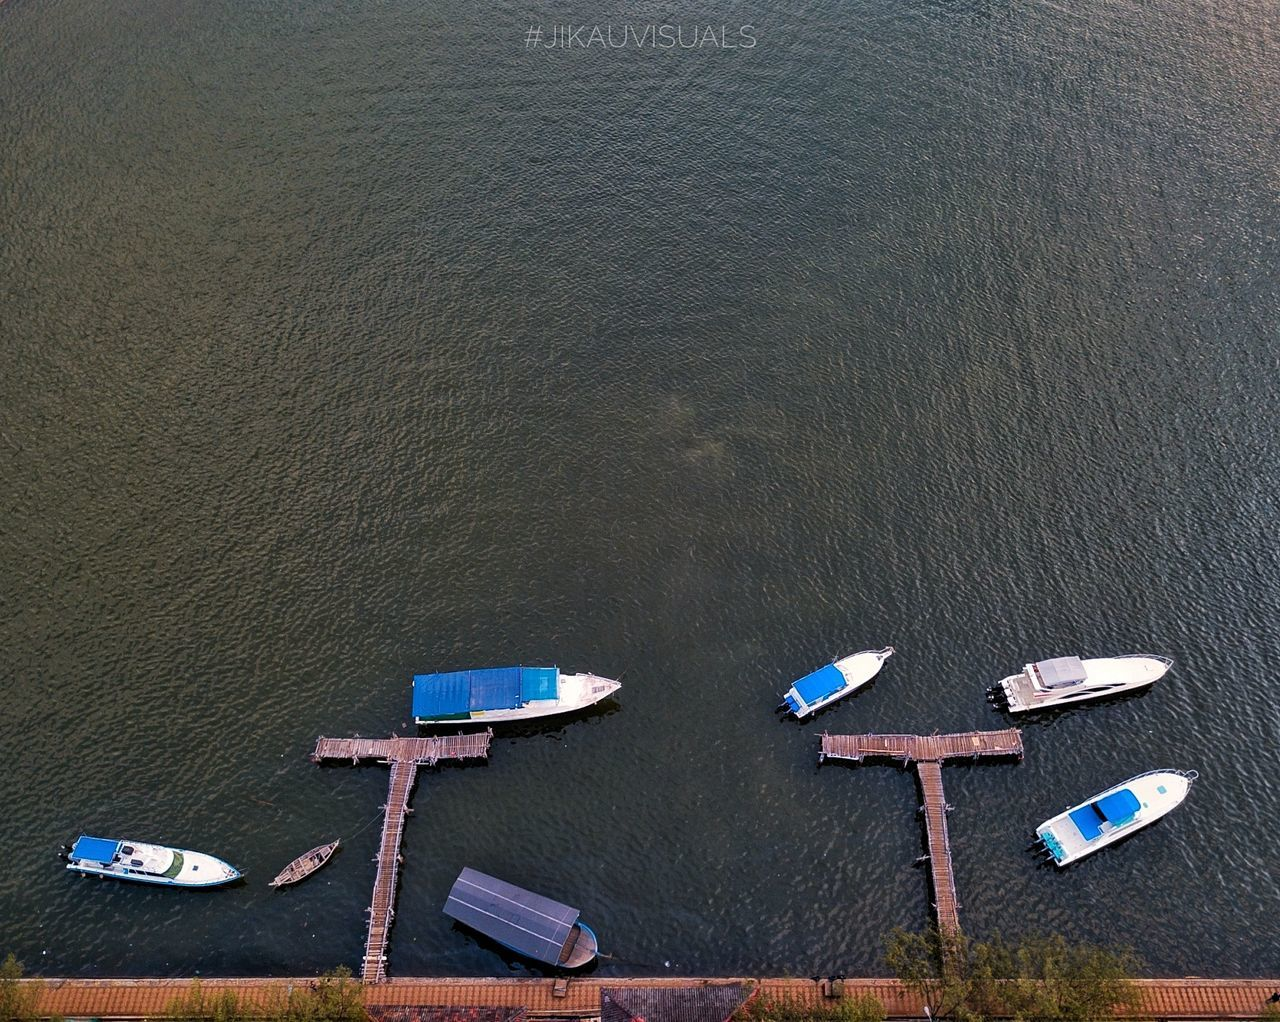 Boats!.. High Angle View Beach Day Outdoors Mavicpro Mavic Pro Aerial Shot Aerialphotography Aerial Shots Dronephotography Droneshot Drones Drone Dji Dronestagram Dronepic Dronepointofview Droneoftheday Drone Fly Dronefly No People Close-up First Eyeem Photo